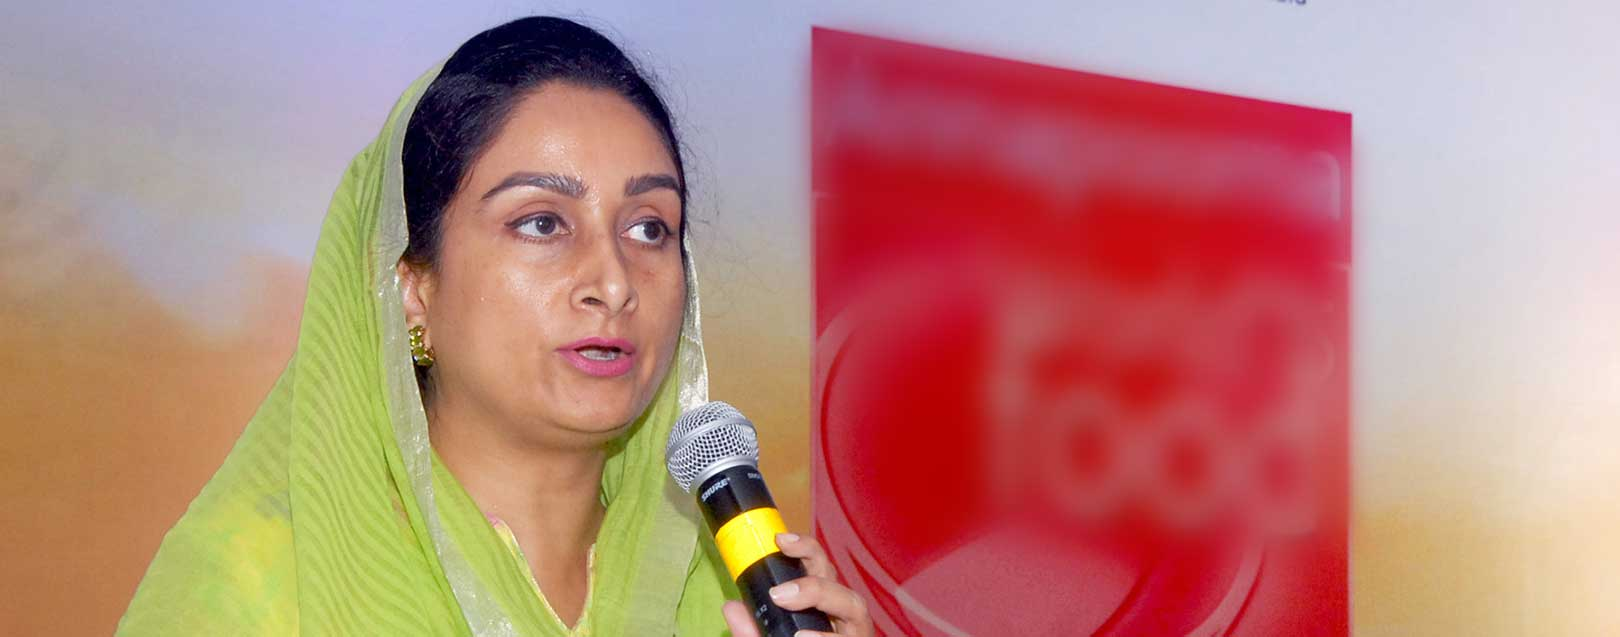 Exports of beef haven't come down: Harsimrat